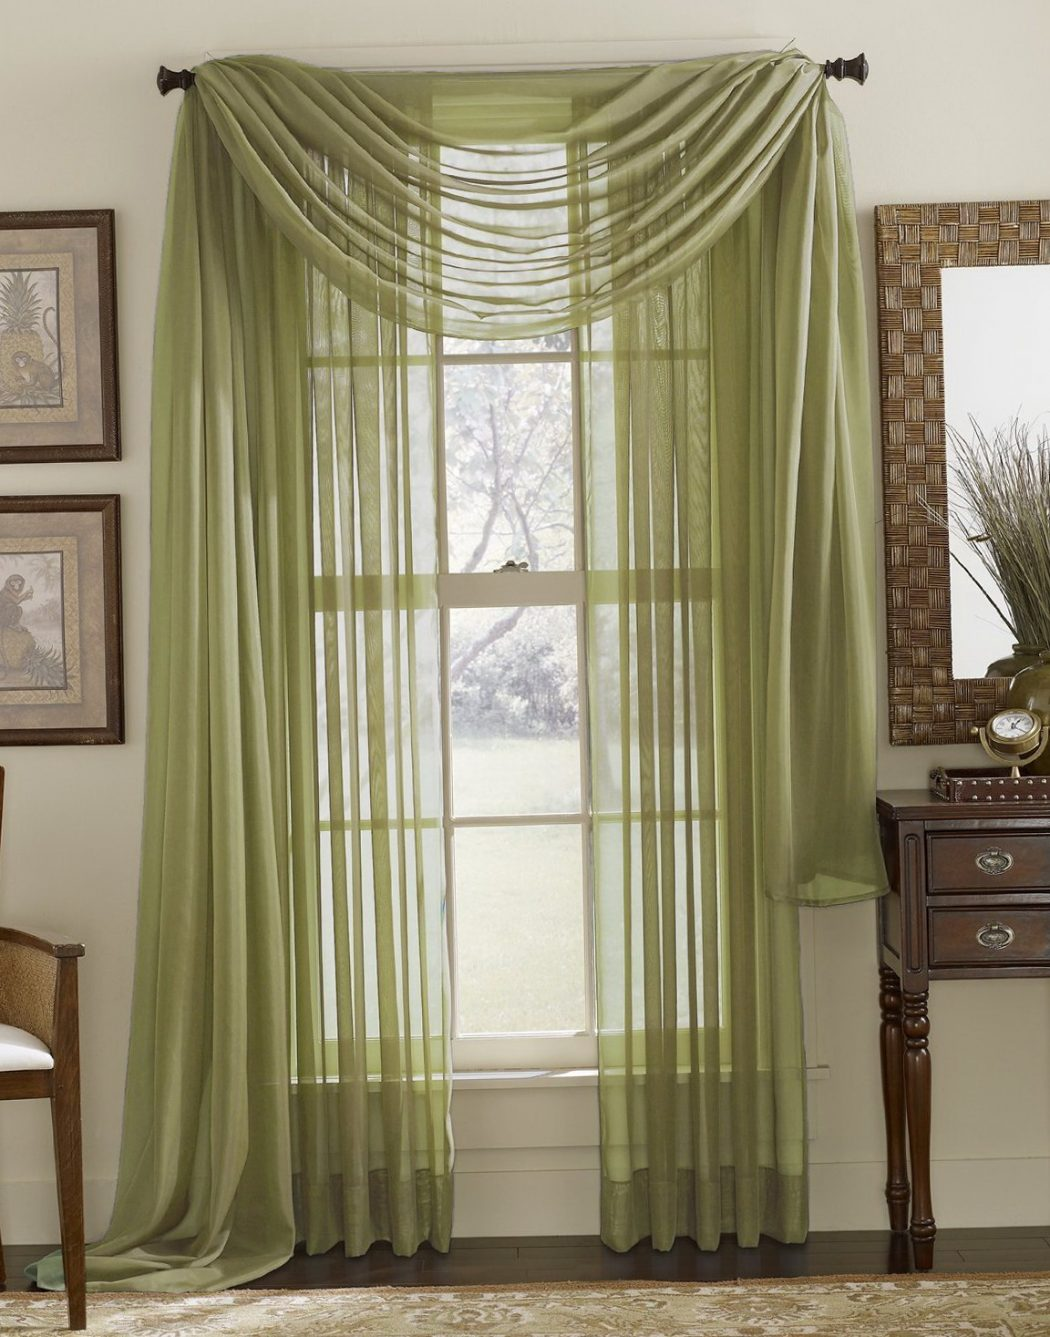 Lovely-Green-Sheer-Curtains-97-In-with-Green-Sheer-Curtains 20 Hottest Curtain Designs for 2017